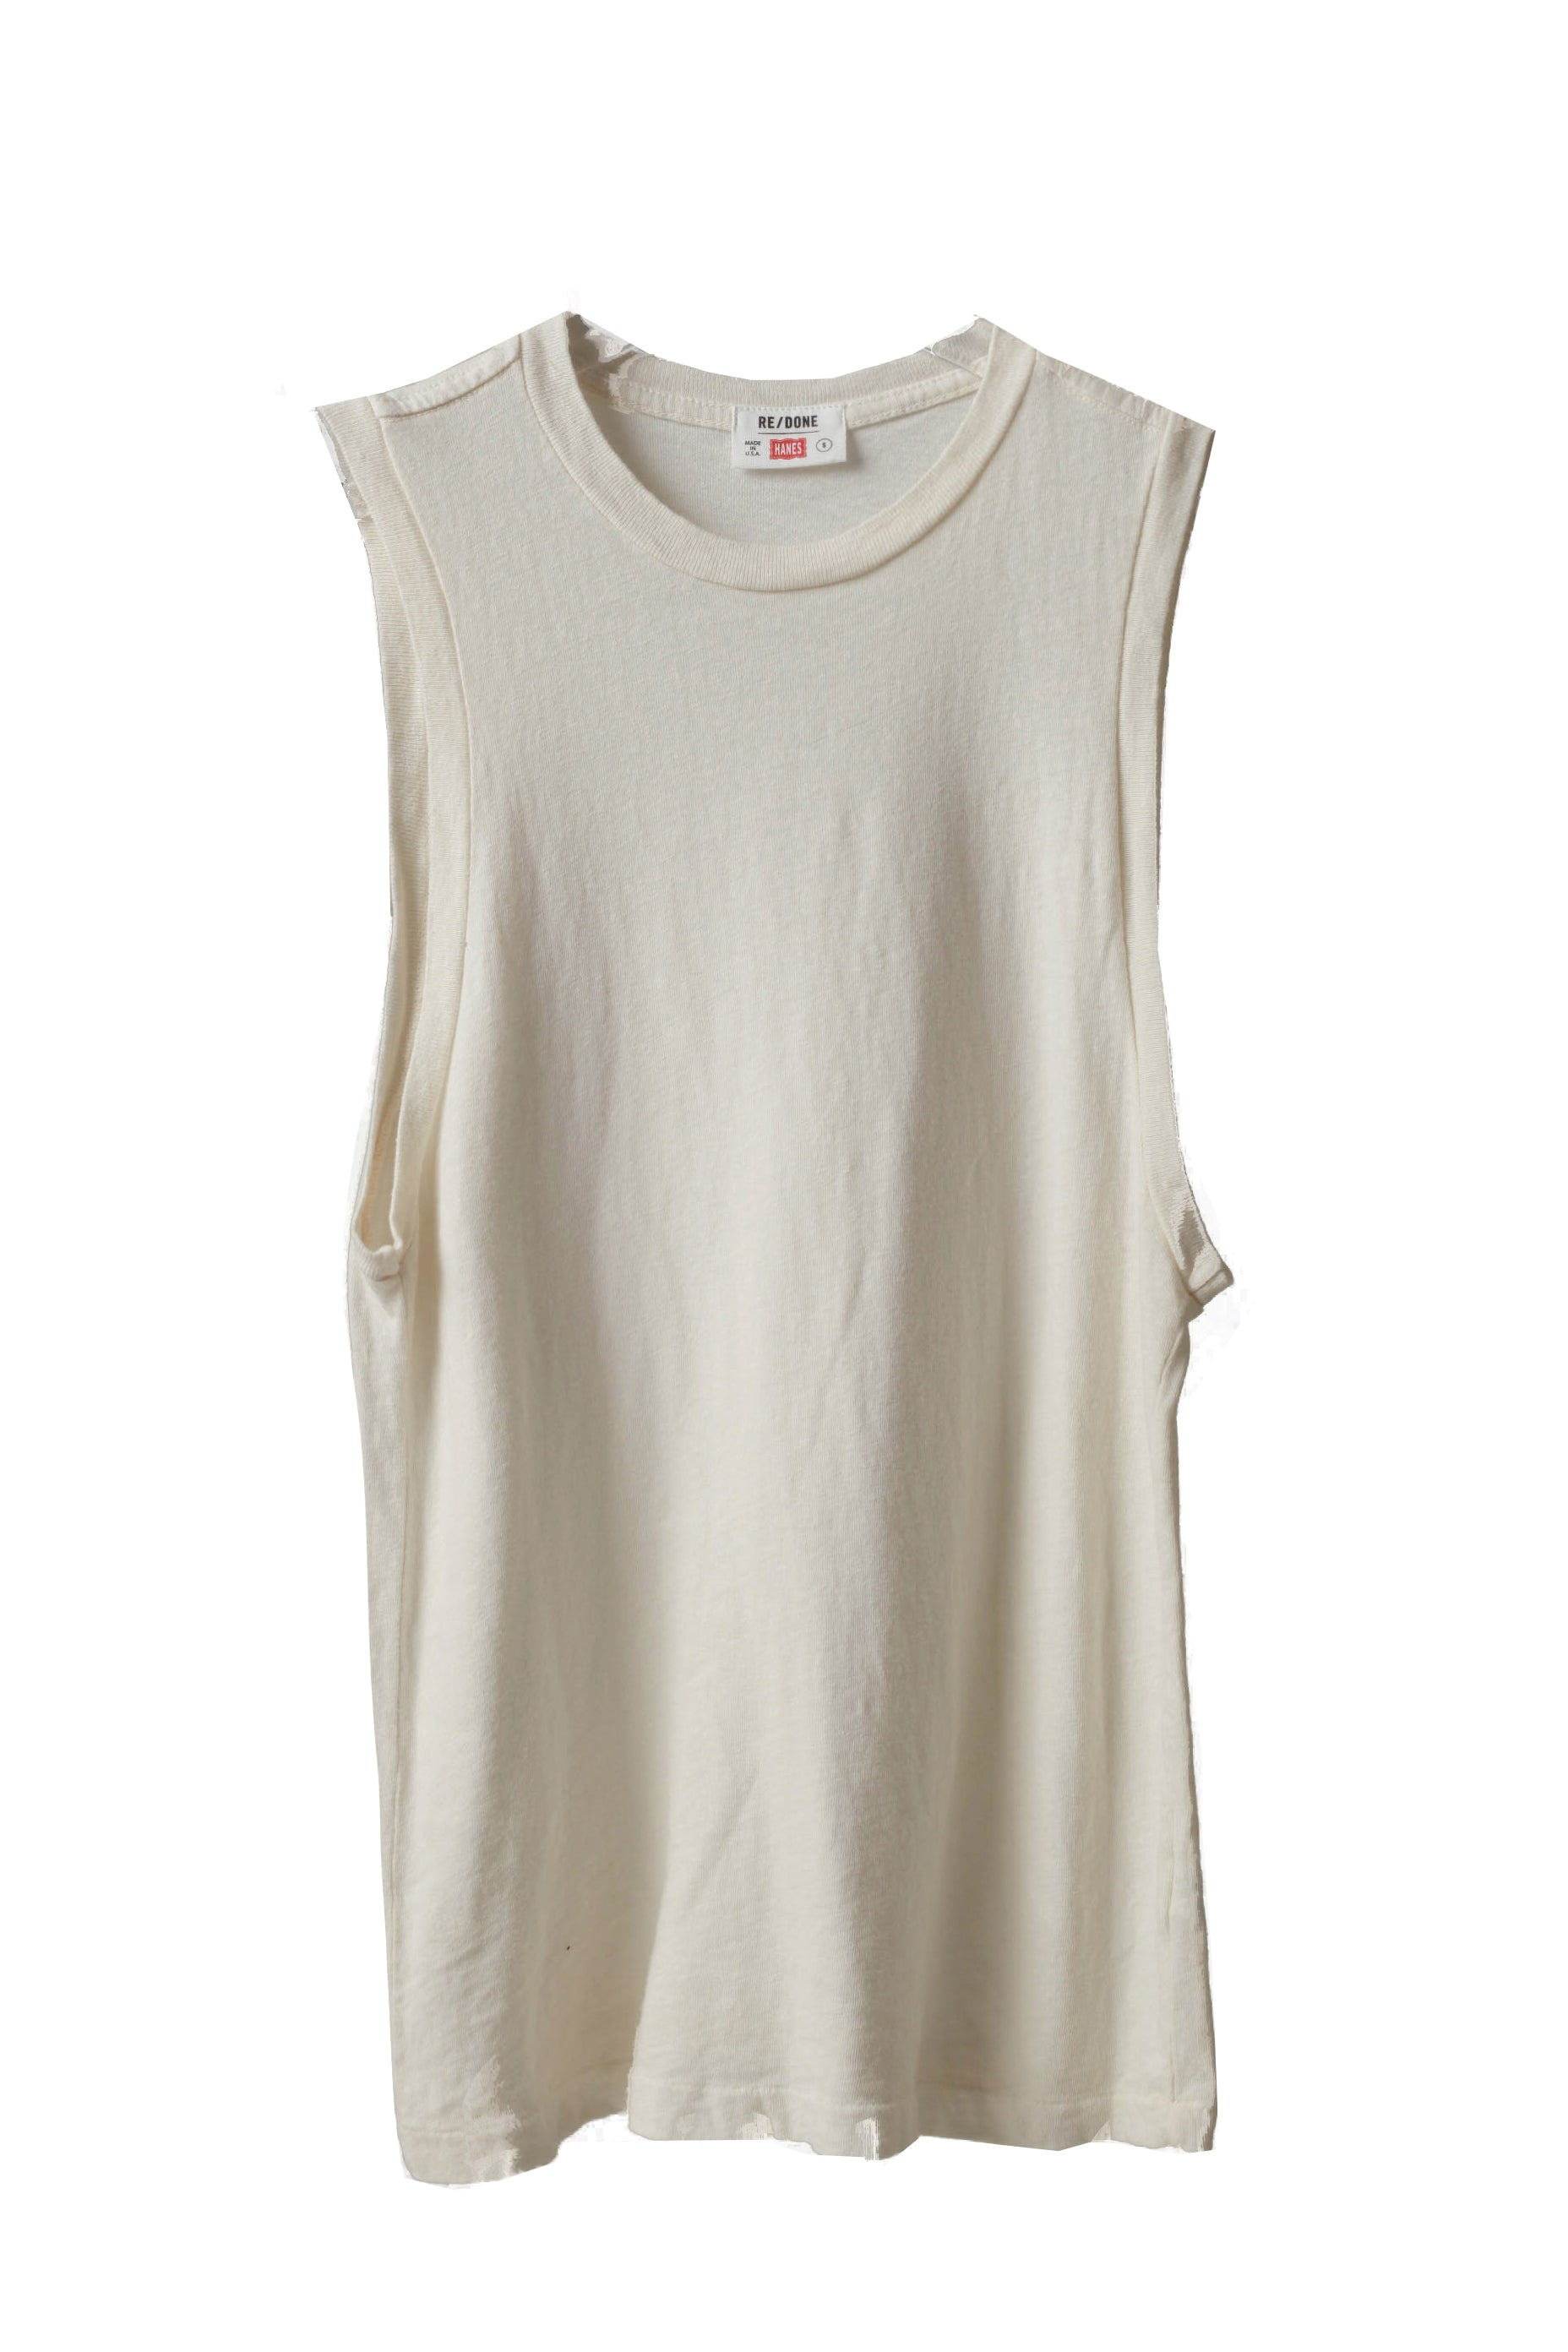 01ade75903155 Women-Tops tagged